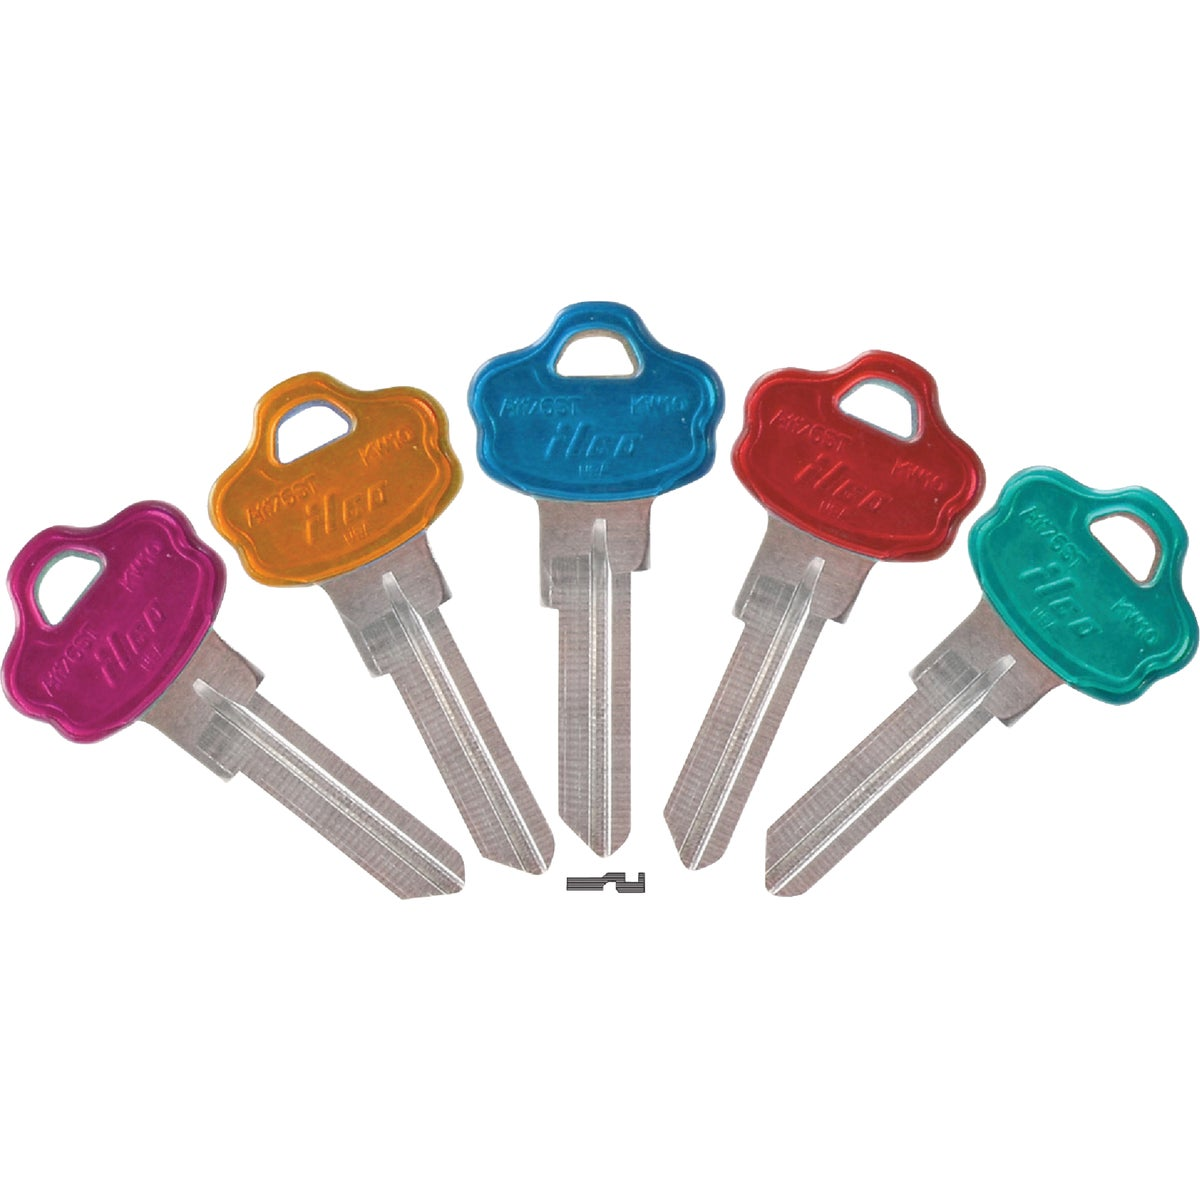 KW10PC KWIKSET DOOR KEY - KW10-PC ASST by Ilco Corp